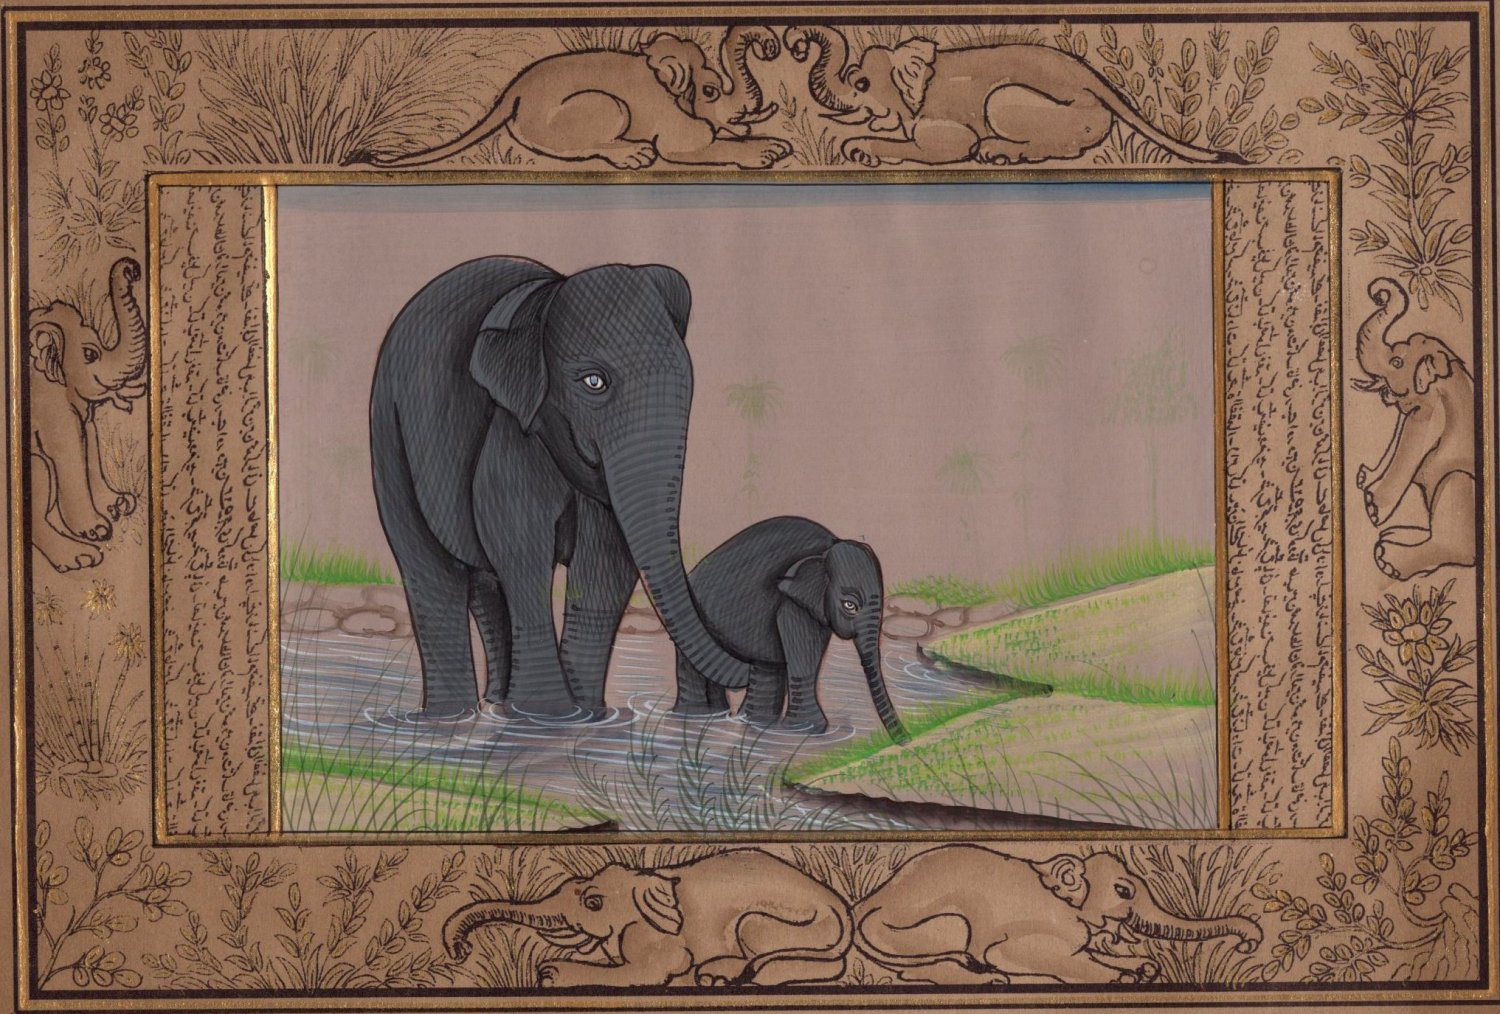 Indian Elephant Miniature Painting Handmade Illuminated Manuscript Animal Art